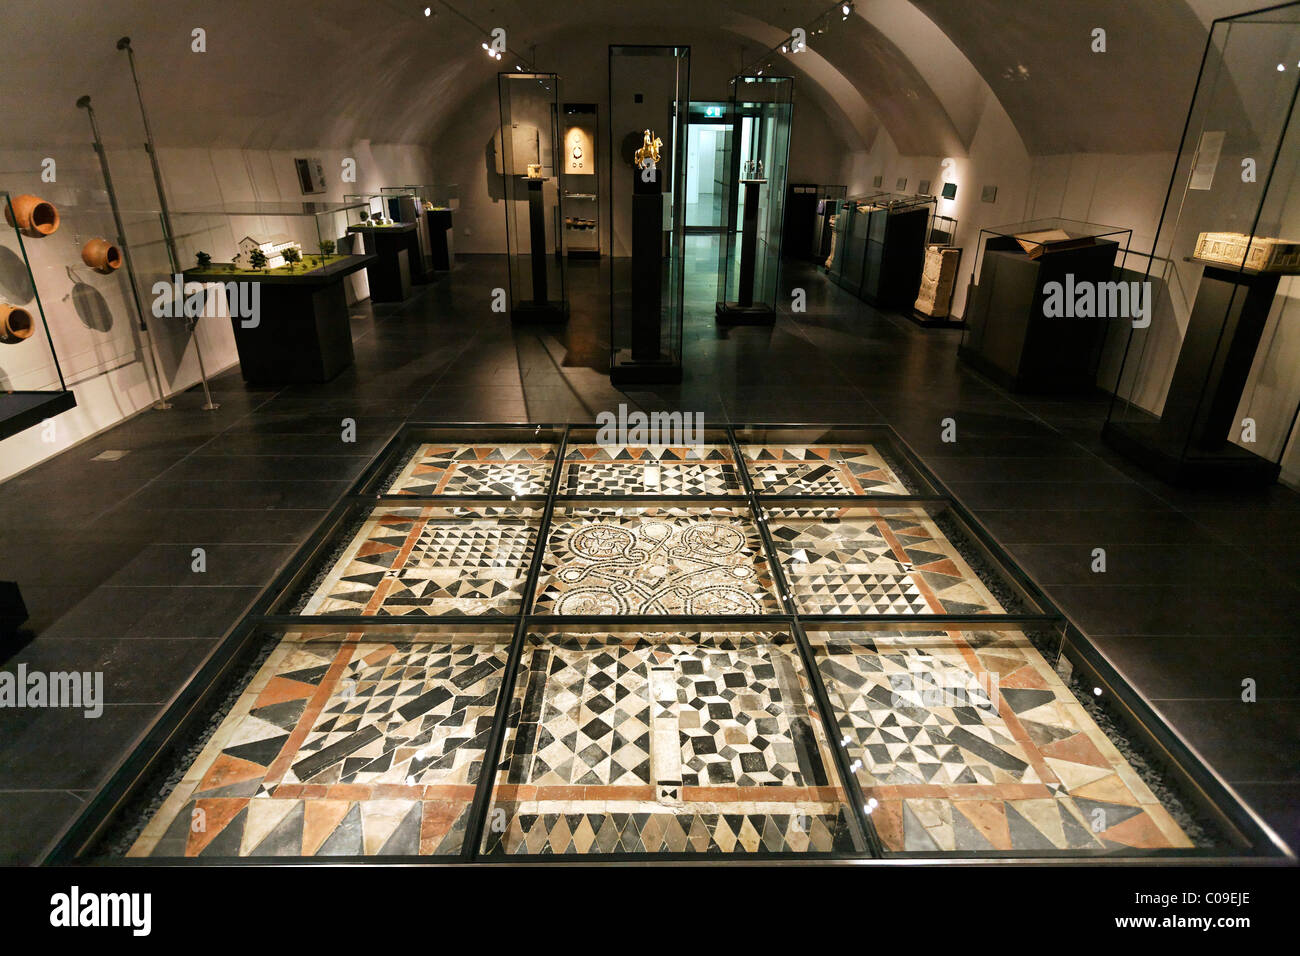 Exhibition Room With A Medieval Mosaic Floor Under Glass Stiftsmuseum Museum Xanten Monastery